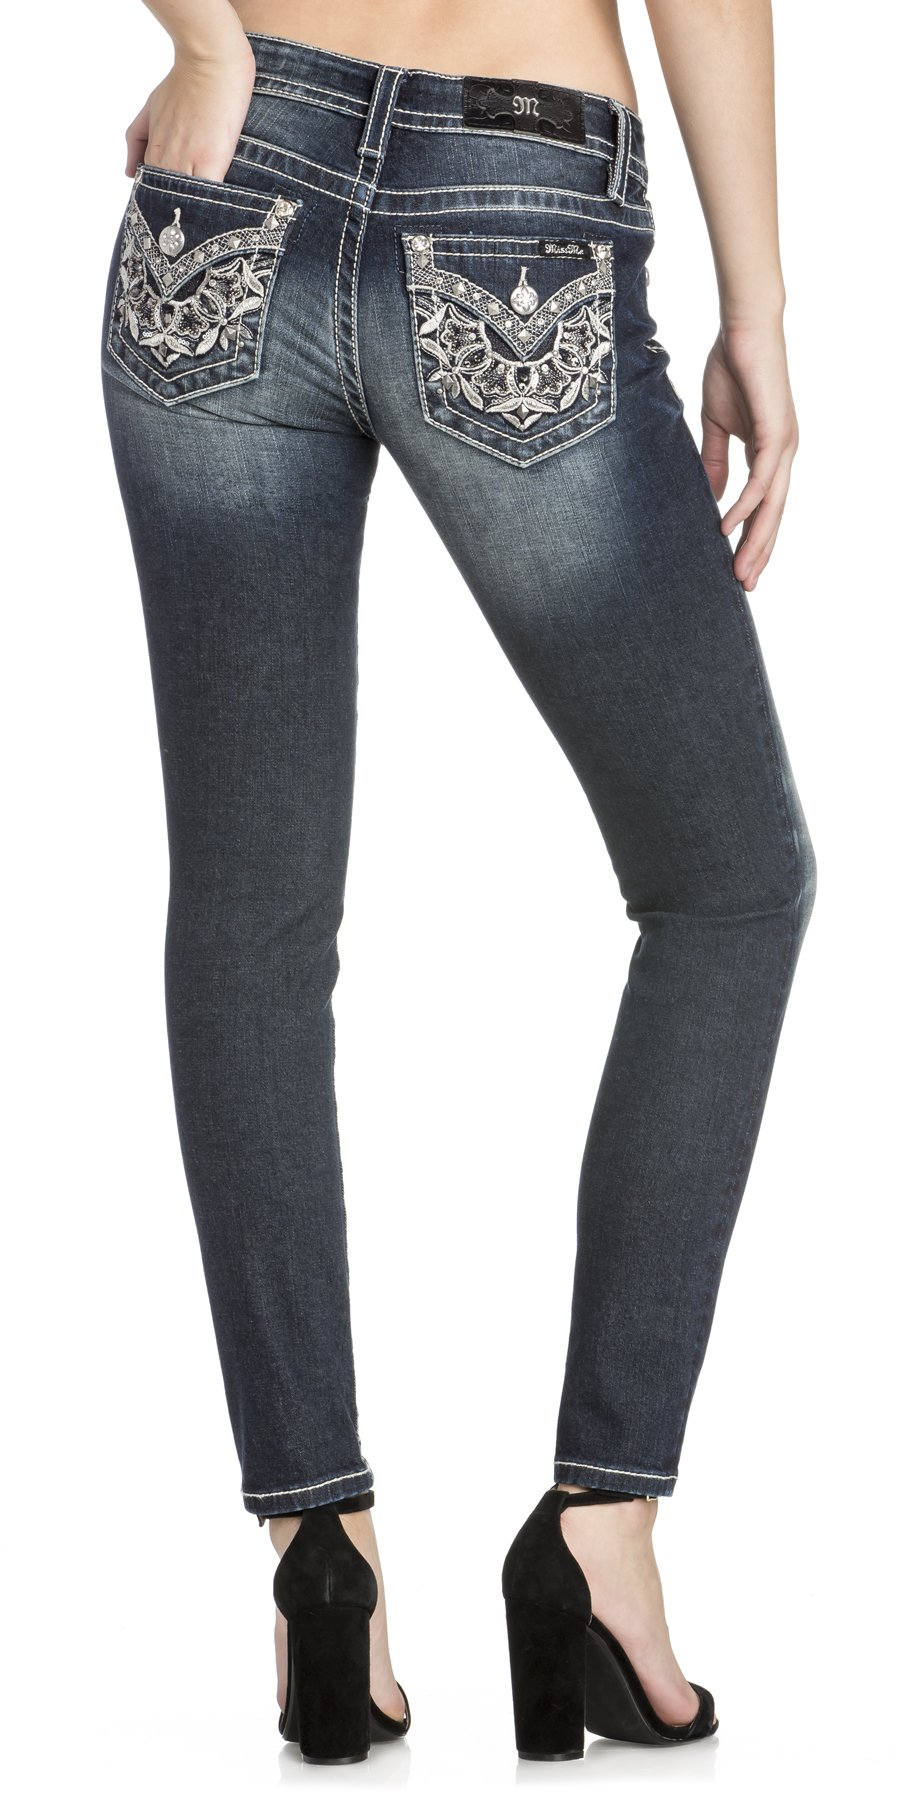 Miss Me Women's Hailey Metallic Lace Embellished Mid-Rise Skinny Jeans (Dark Blue, 27)